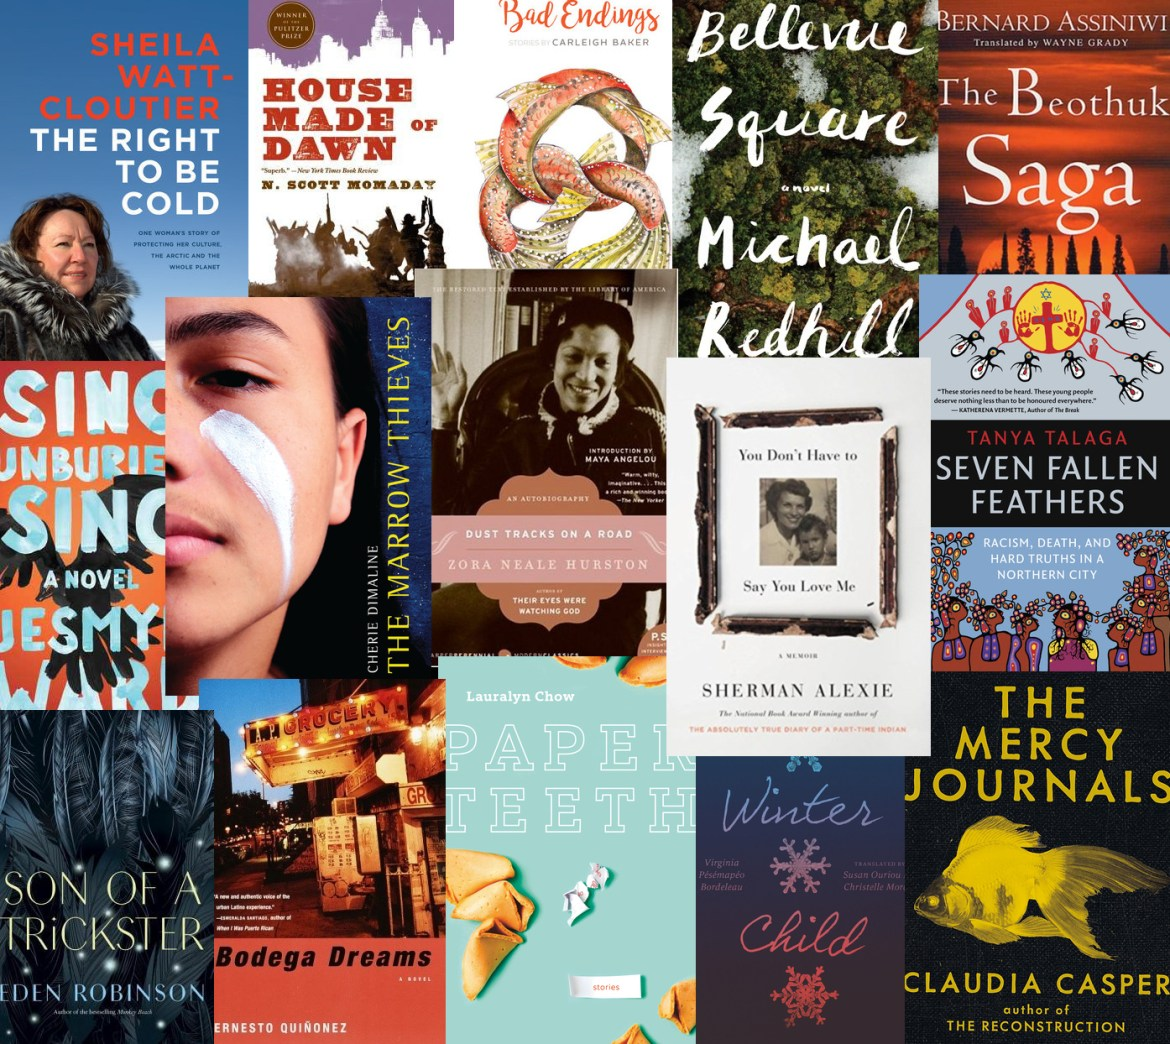 Book covers from stand-out reads of 2017